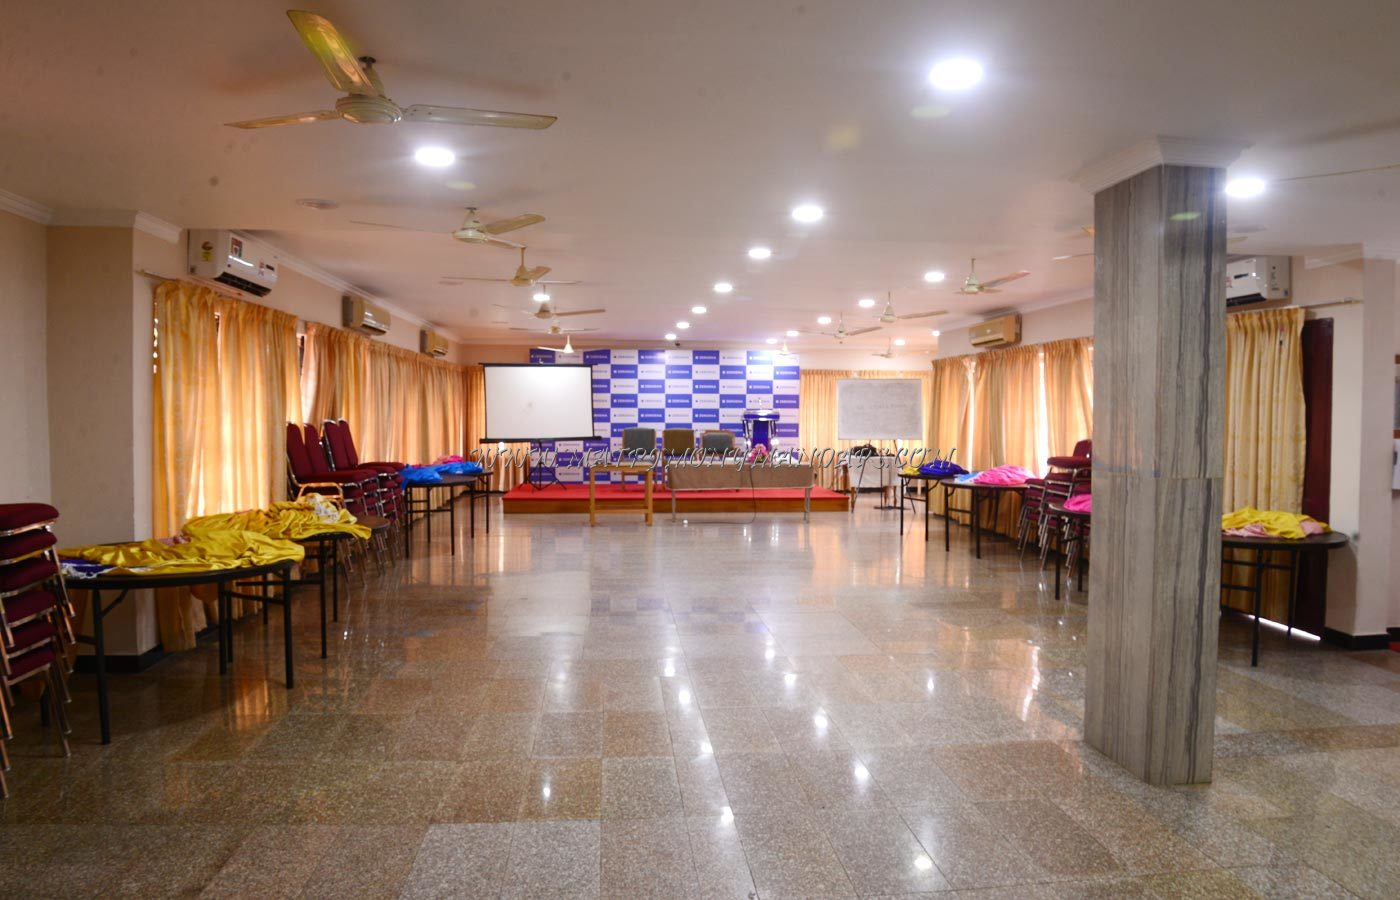 Find the availability of the Hotel Excellency Banquet Hall 1 (A/C) in MG Road, Kochi and avail special offers